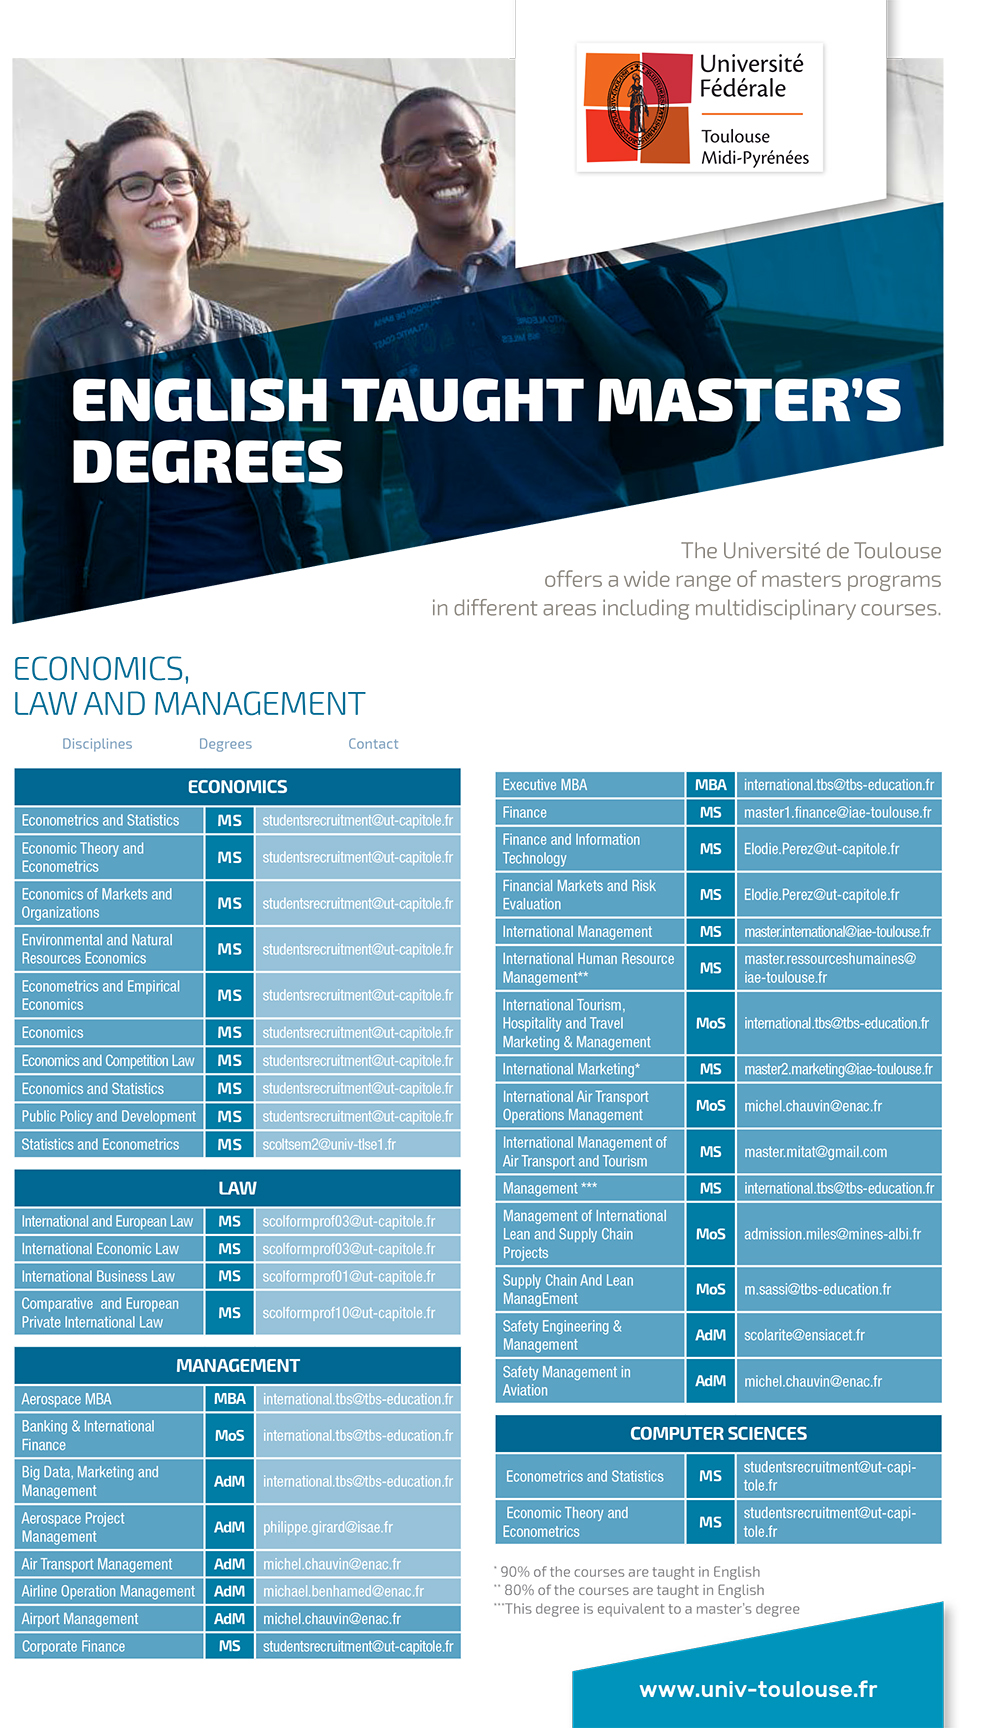 ENGLISH TAUGHT MASTER'S DEGREES